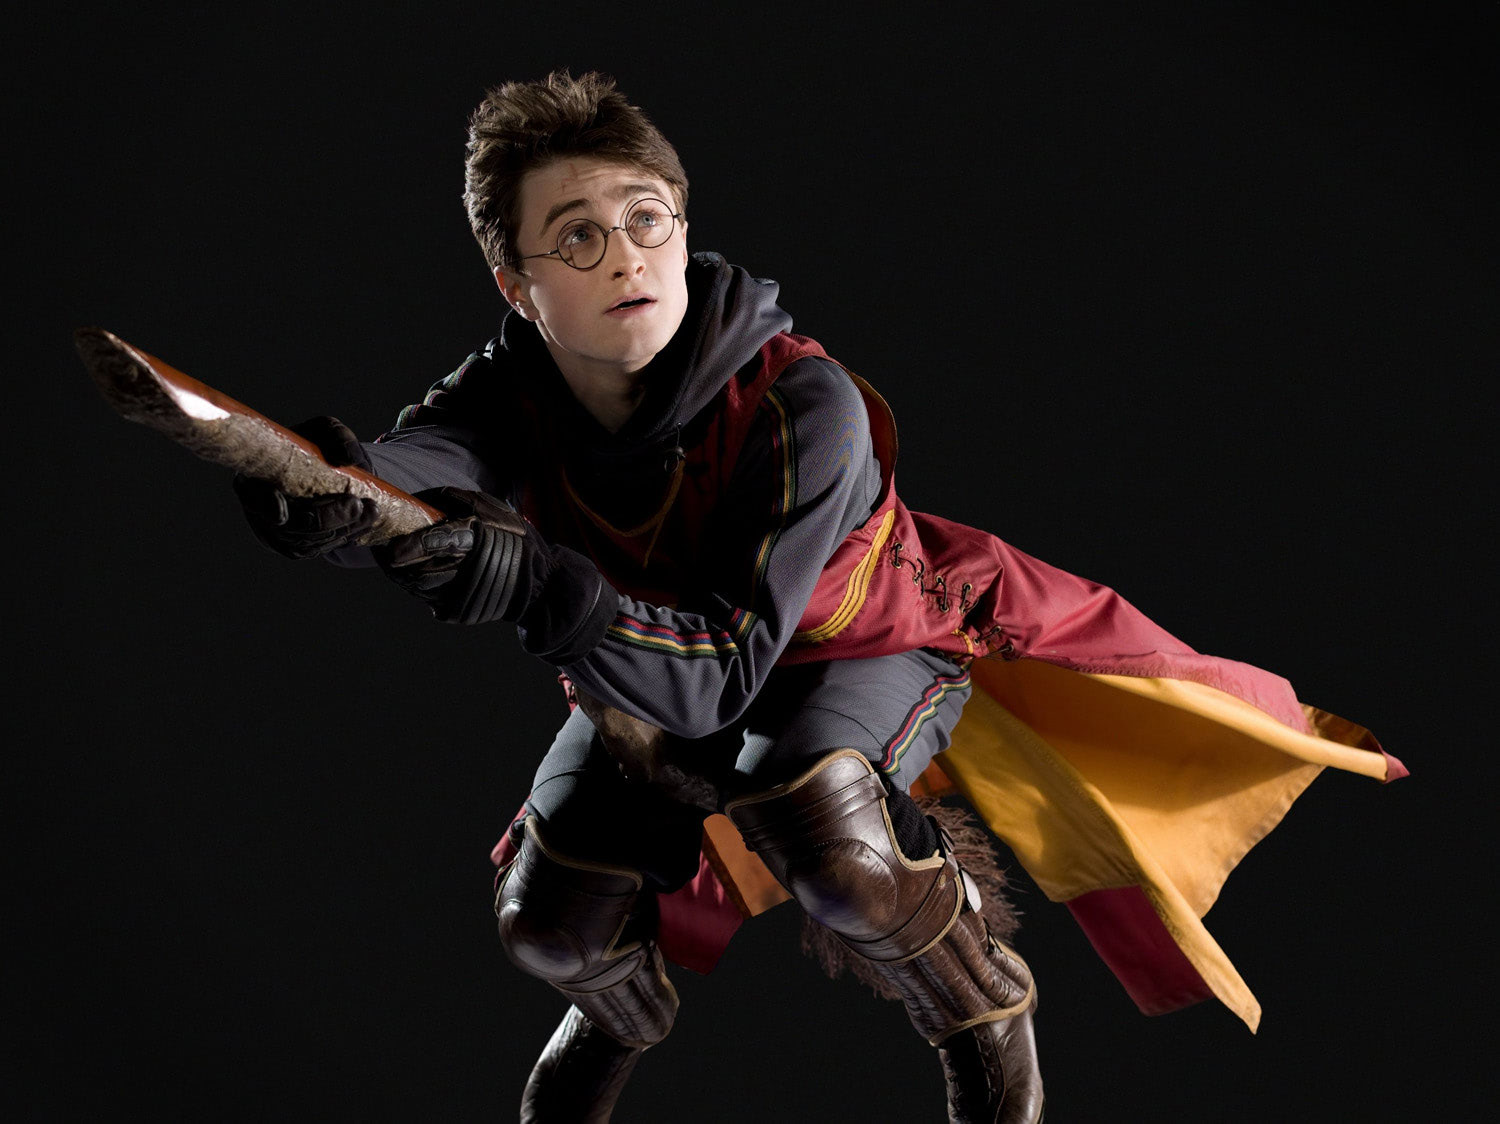 Portrait of Harry Potter in Quidditch robes